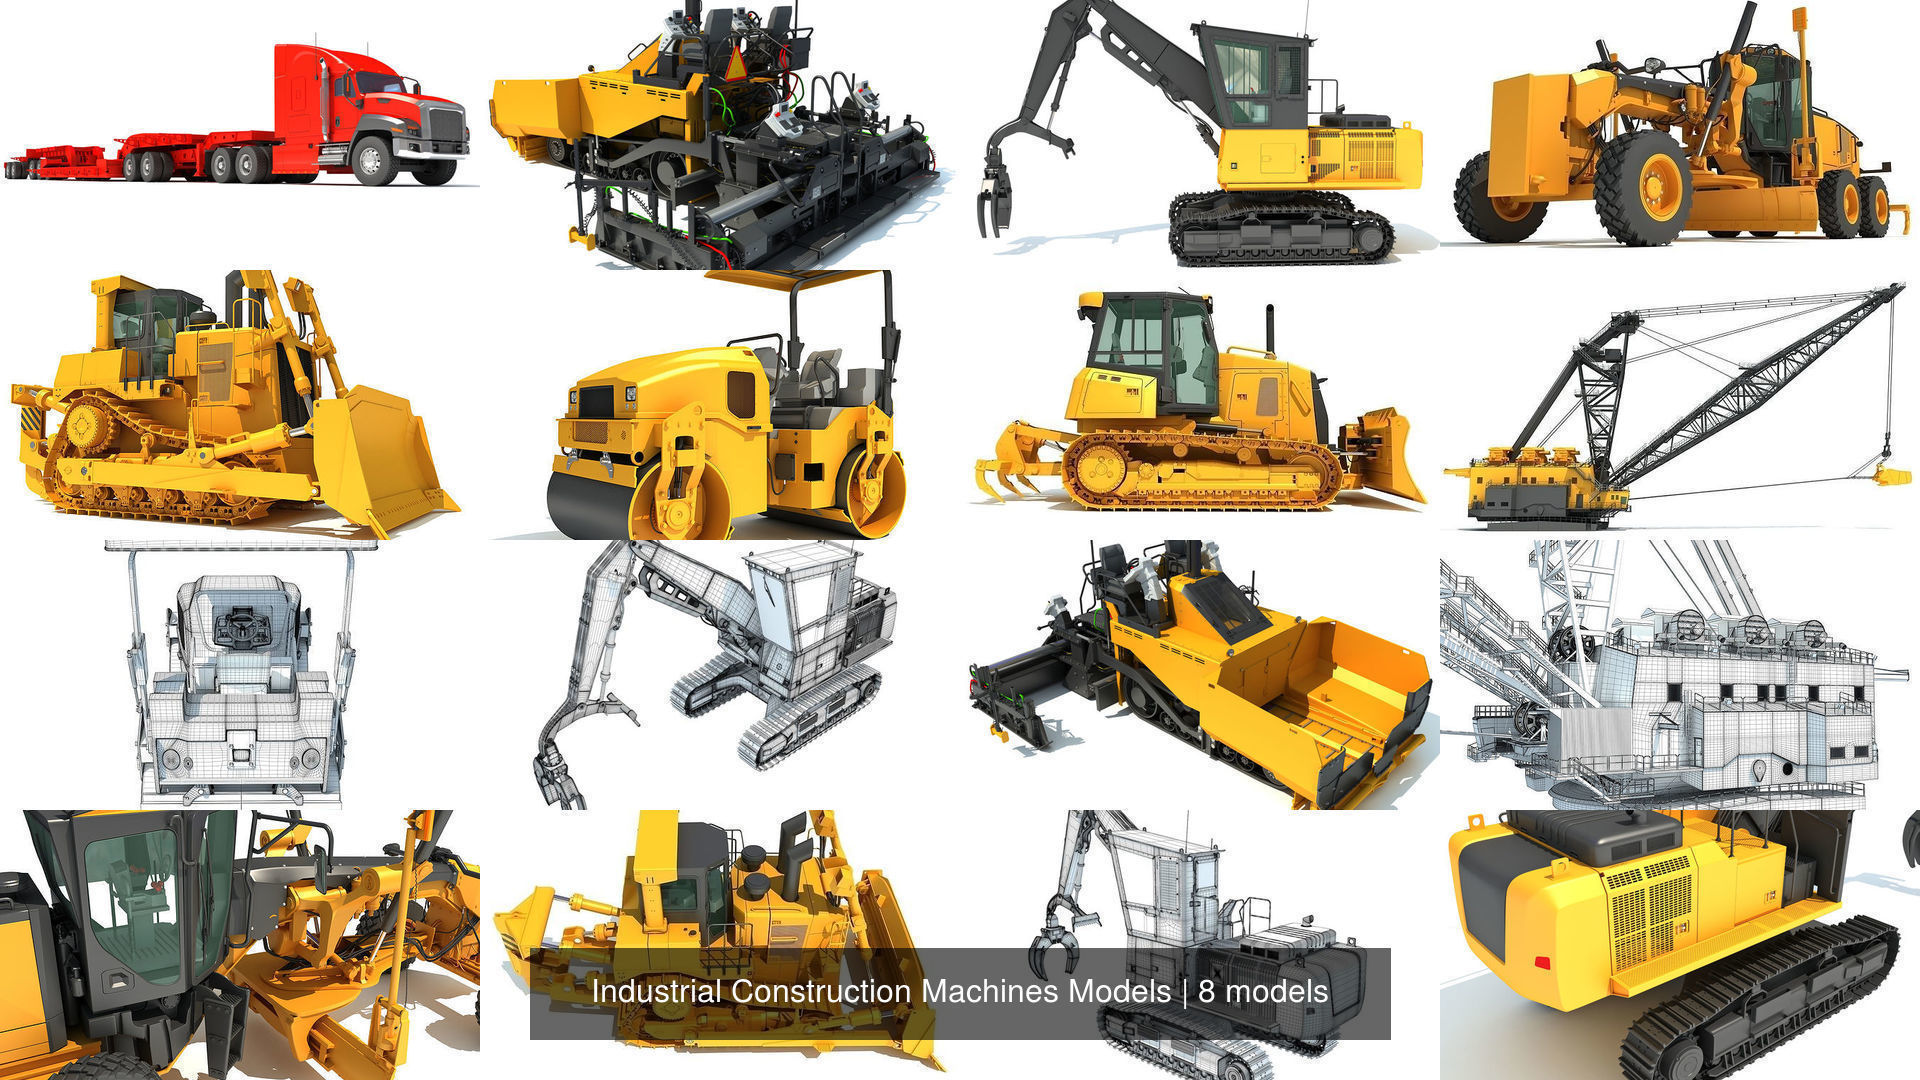 Industrial Construction Machines Models